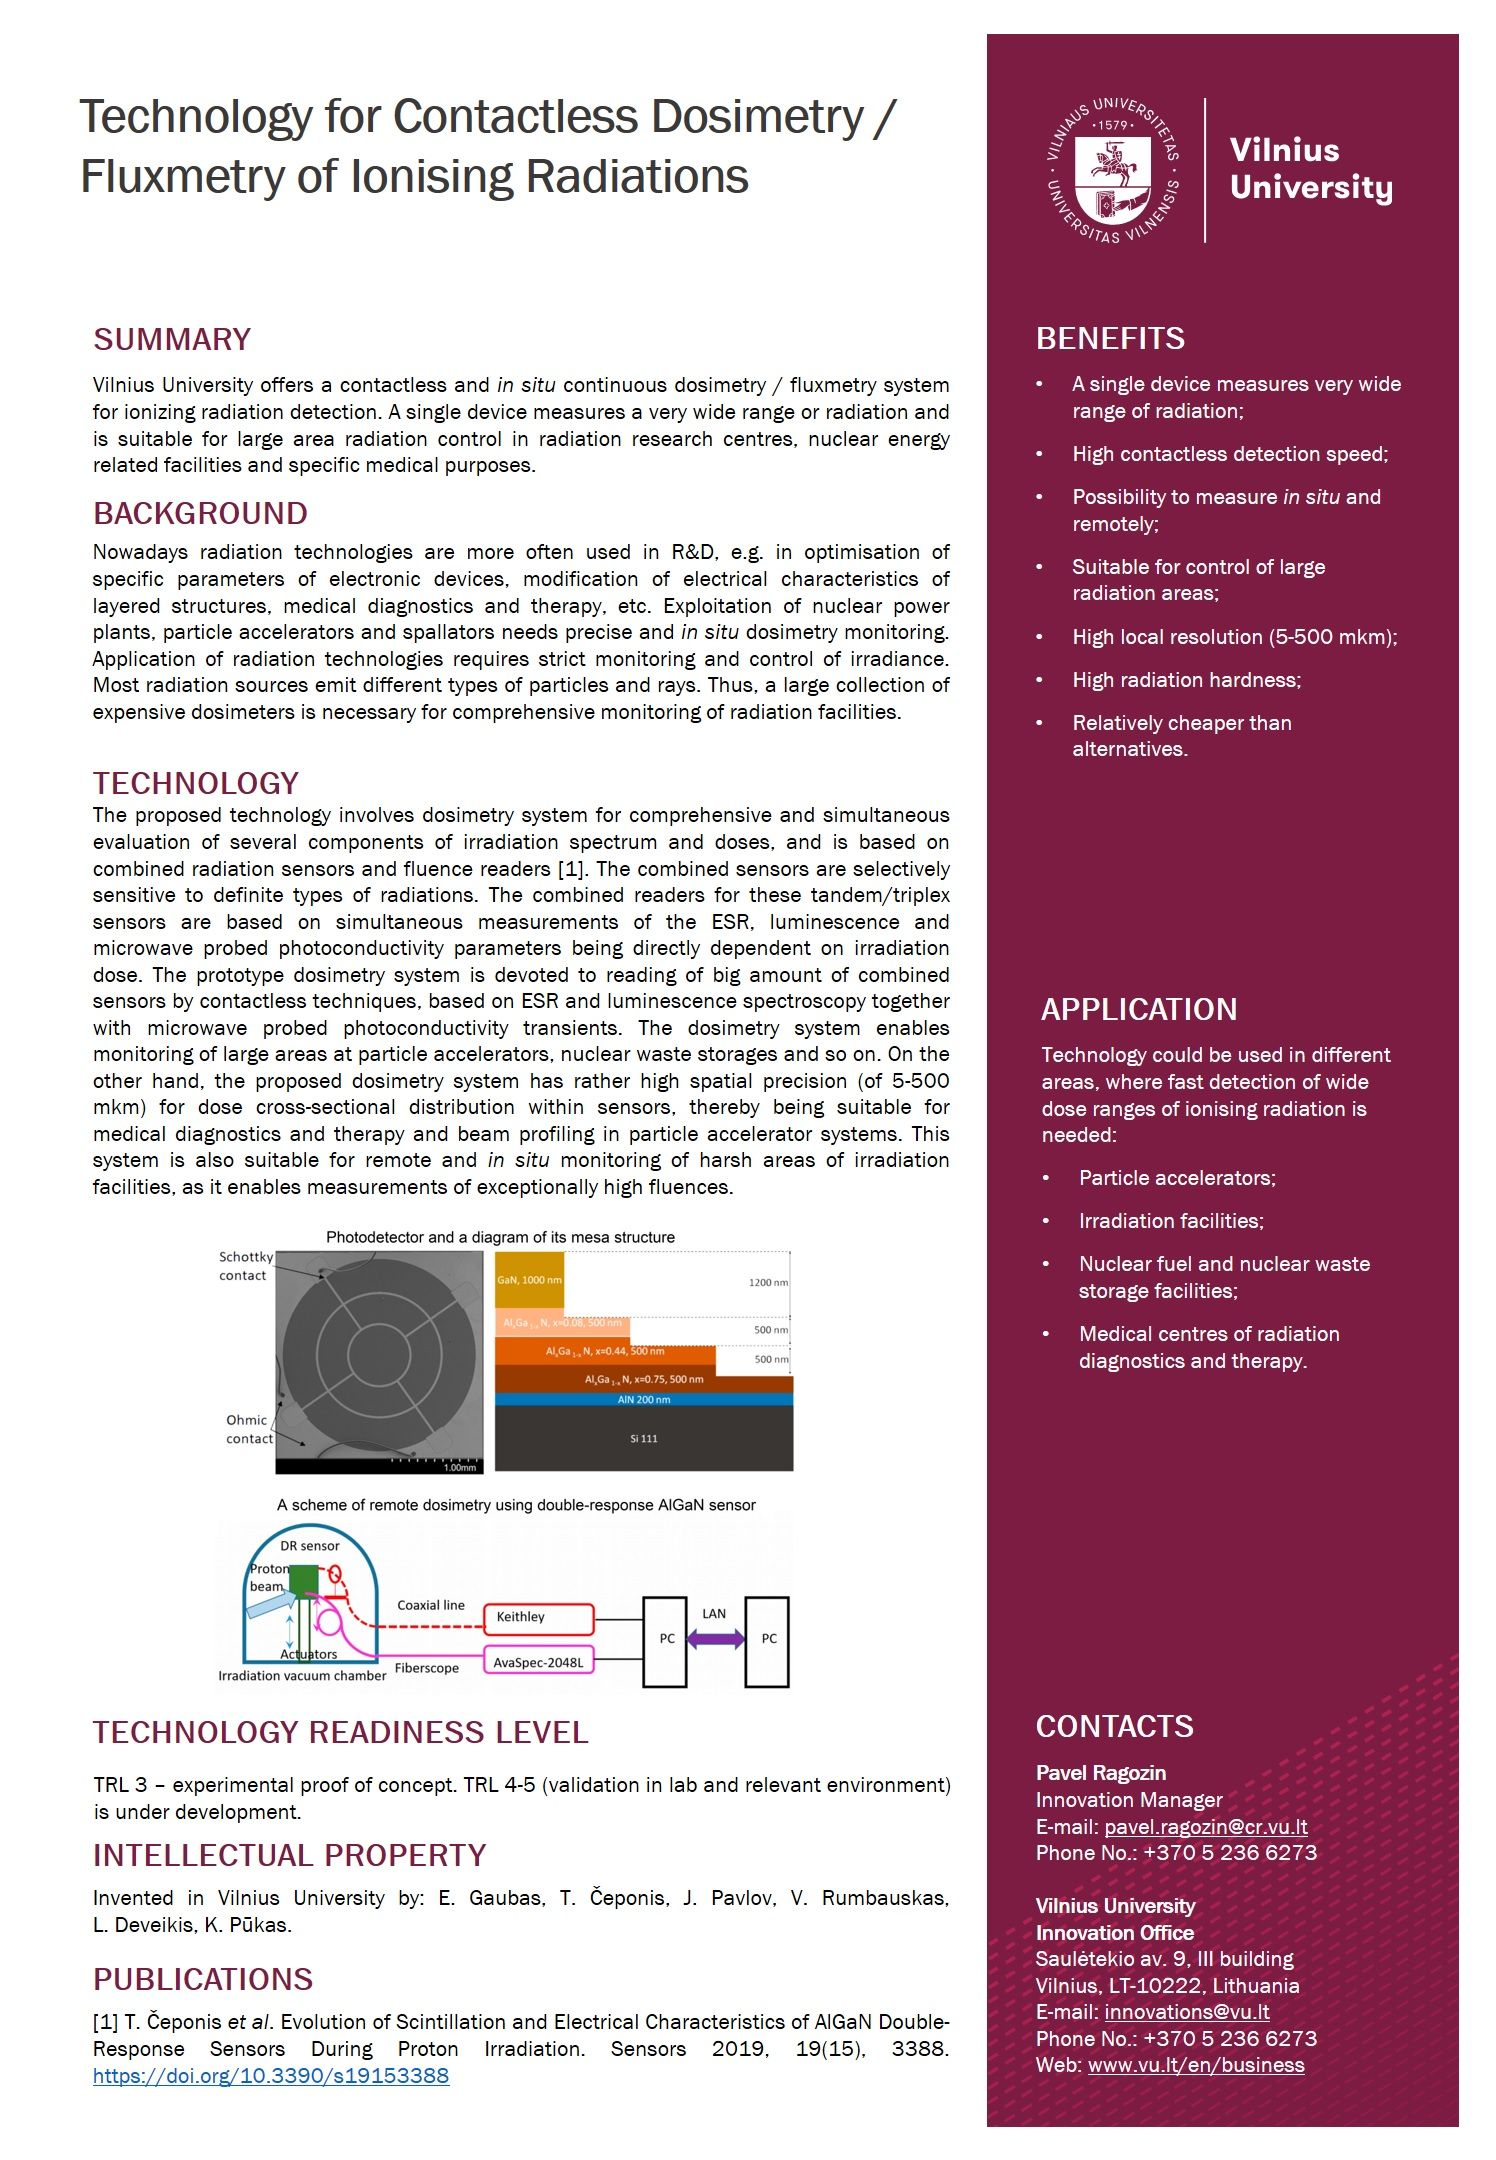 Onepager Technology for Contactless Dosimetry Fluxmetry of Ionising Radiations